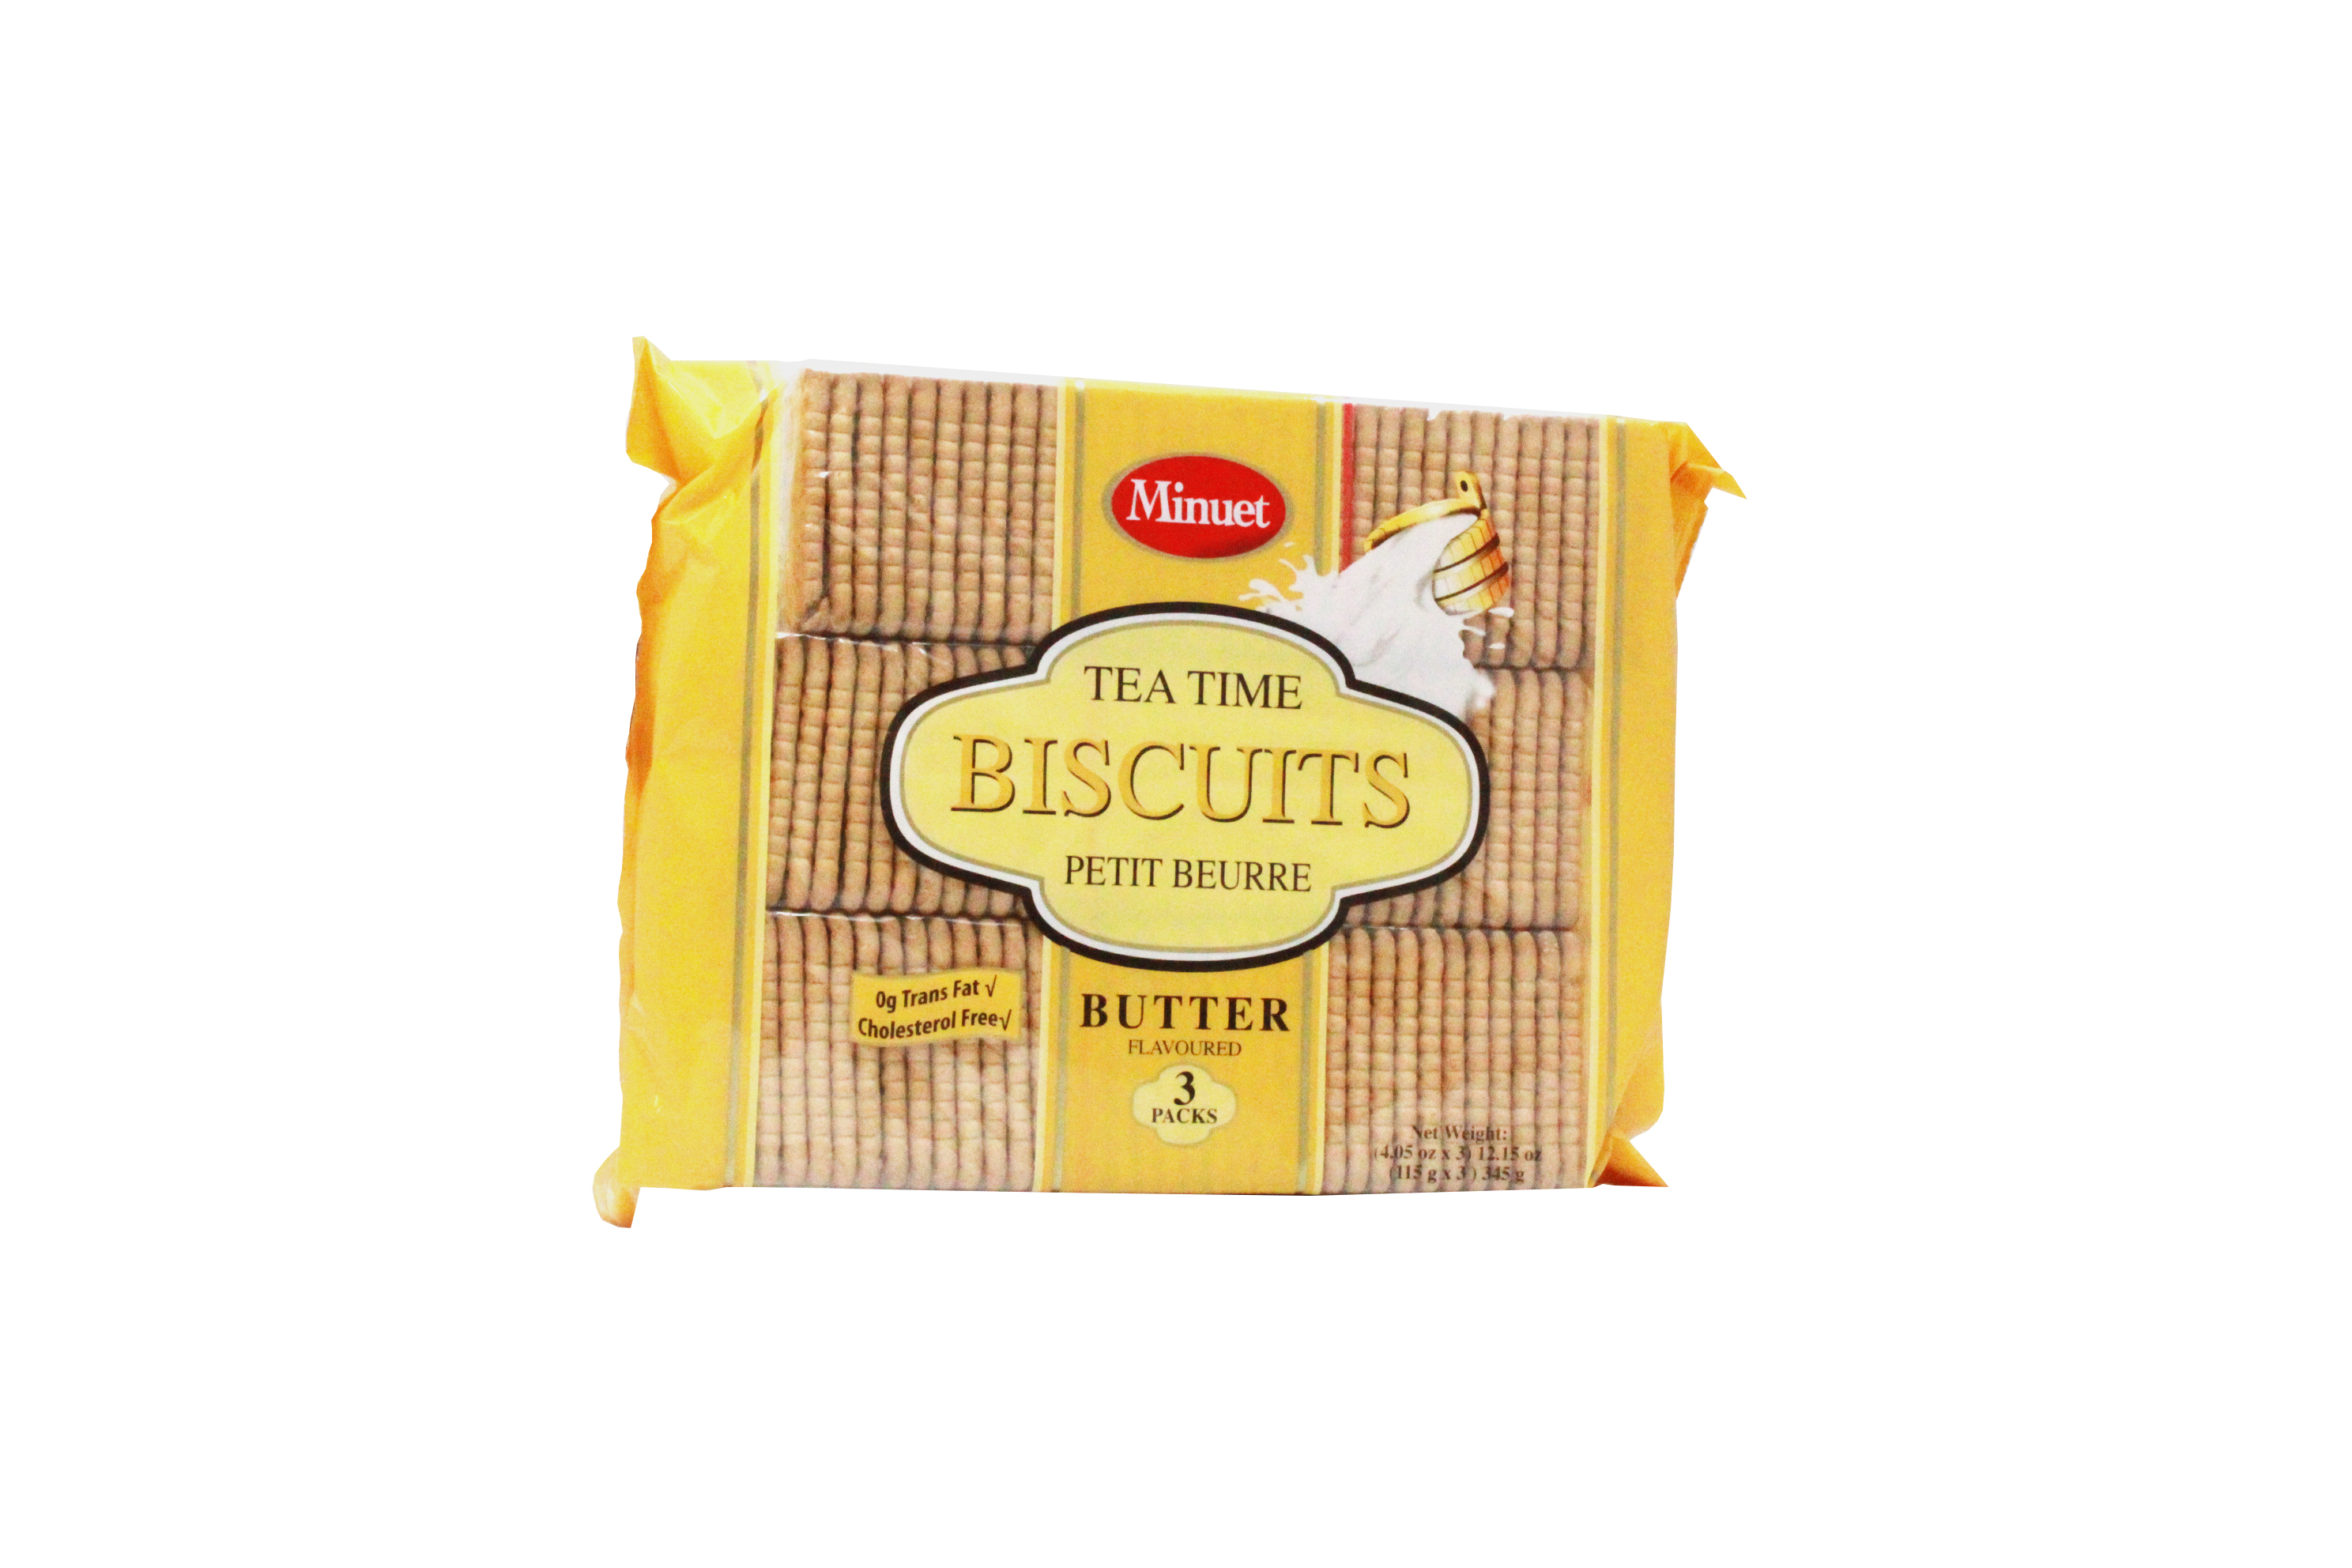 View MINUET TEA BISCUITS 3 PACK 12.15 OZ BUTTER